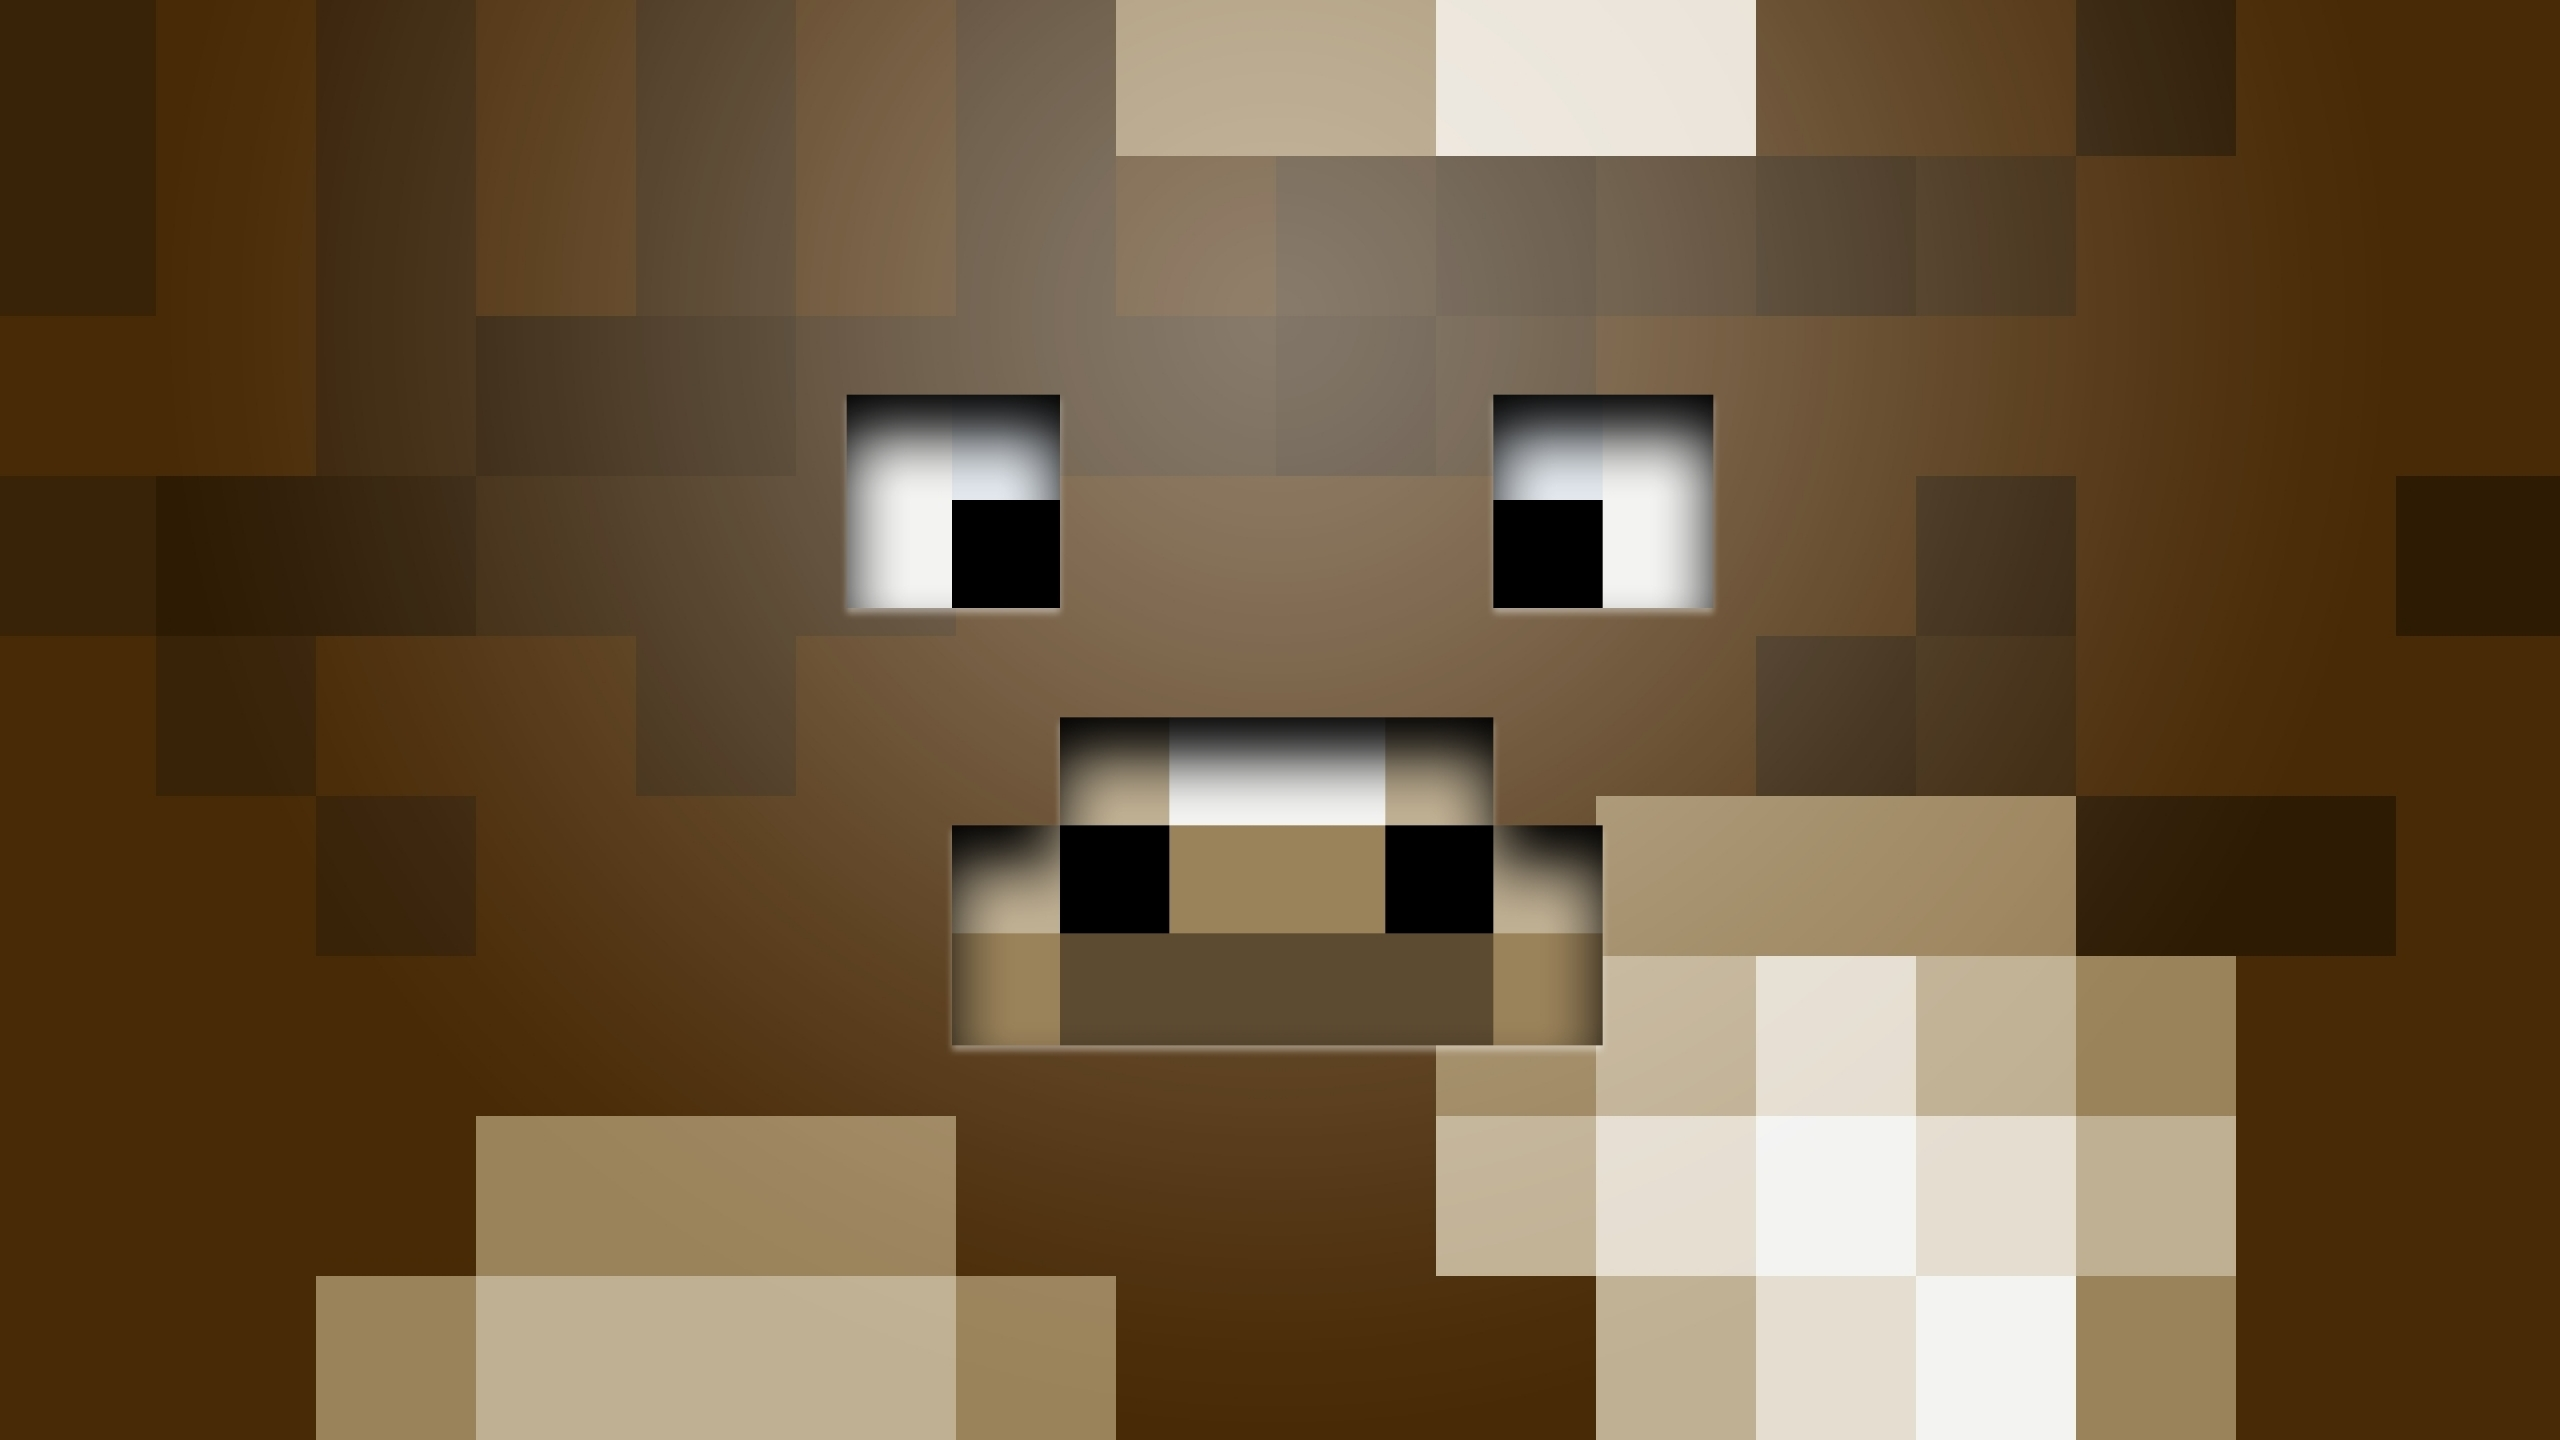 minecraft_funny_cow_wallpaper_2560x1440